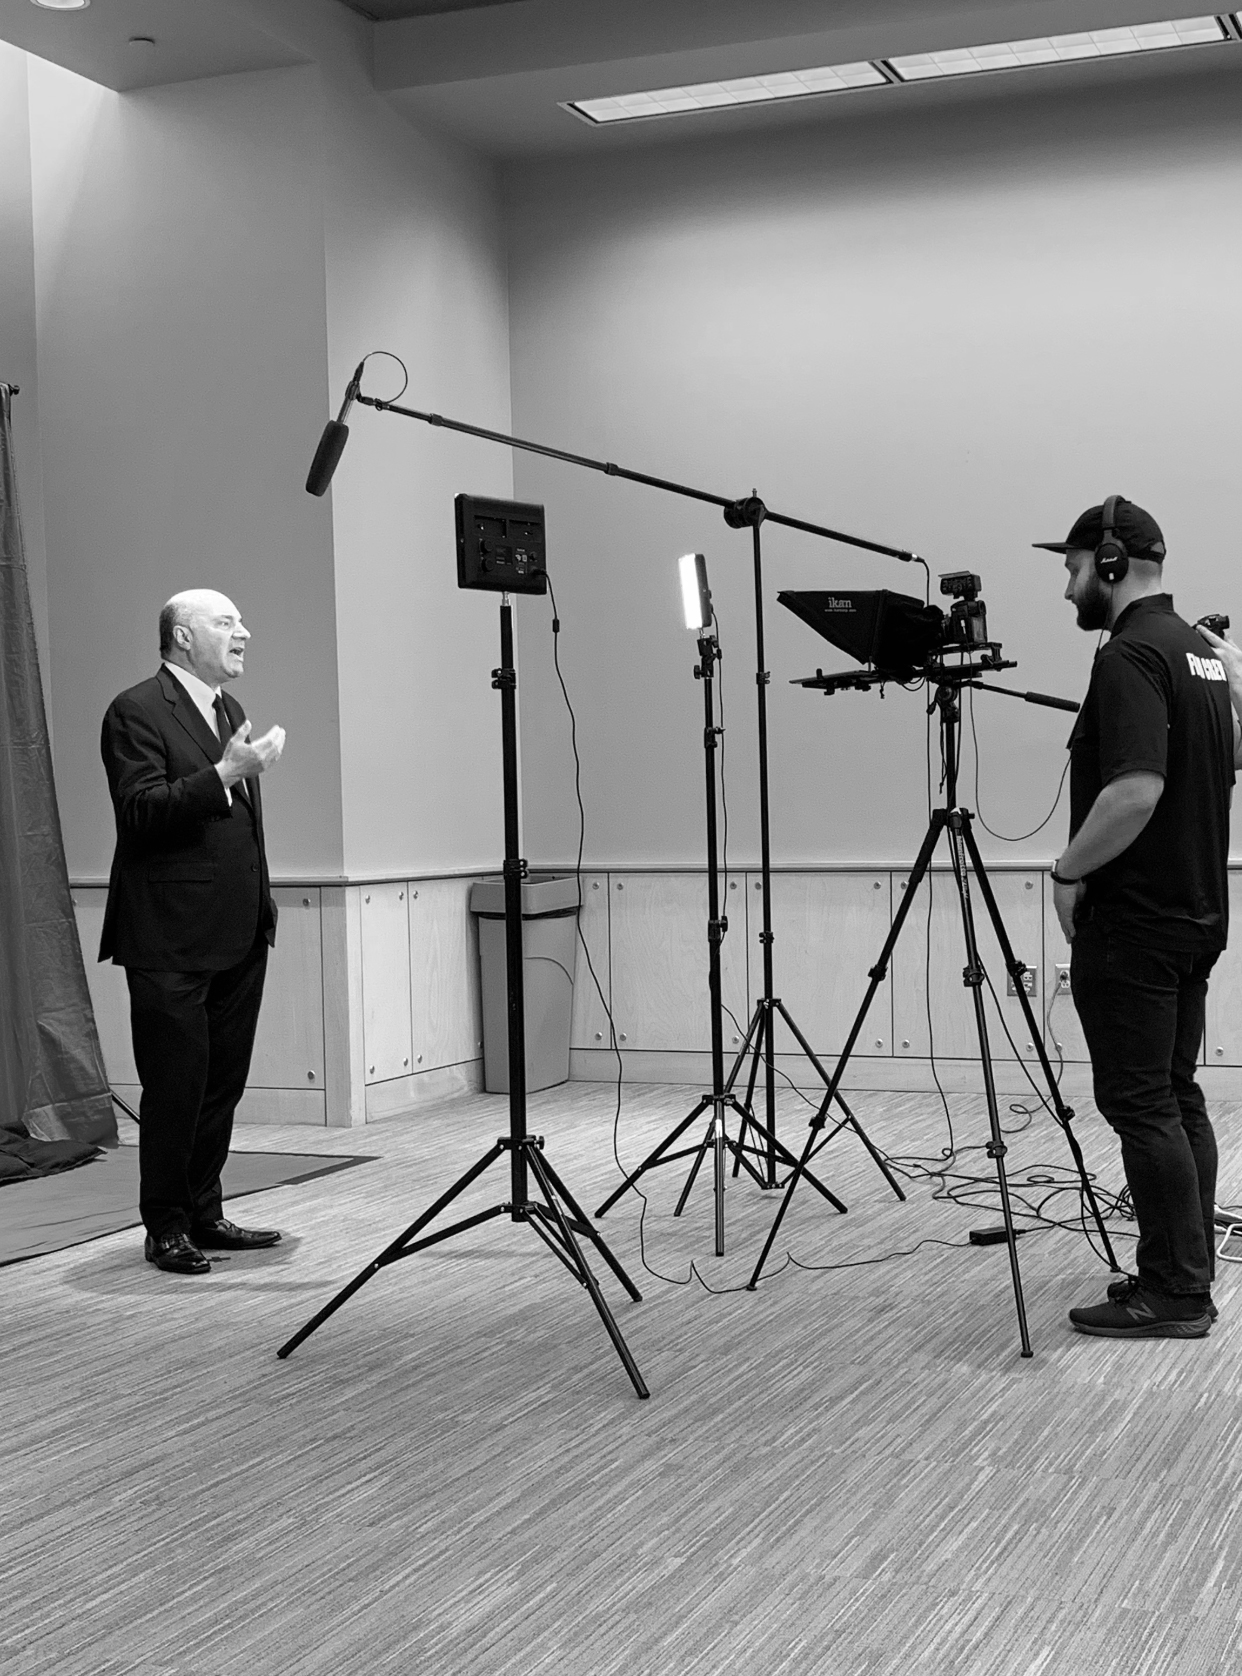 Filming with Kevin O'Leary from ABC's Shark Tank